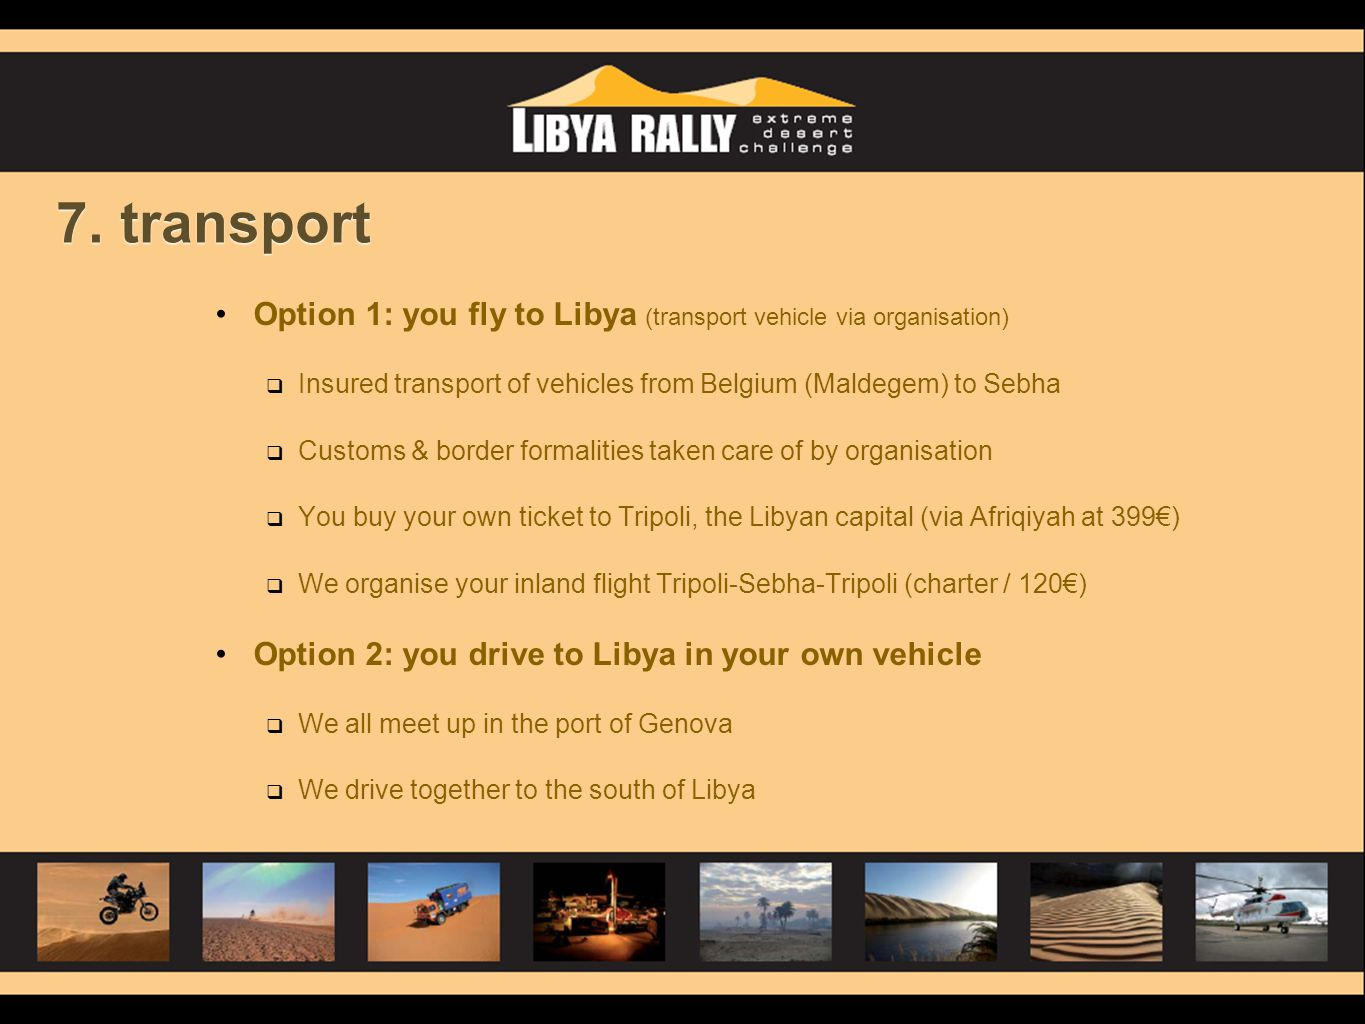 Option 1: you fly to Libya (transport vehicle via organisation)